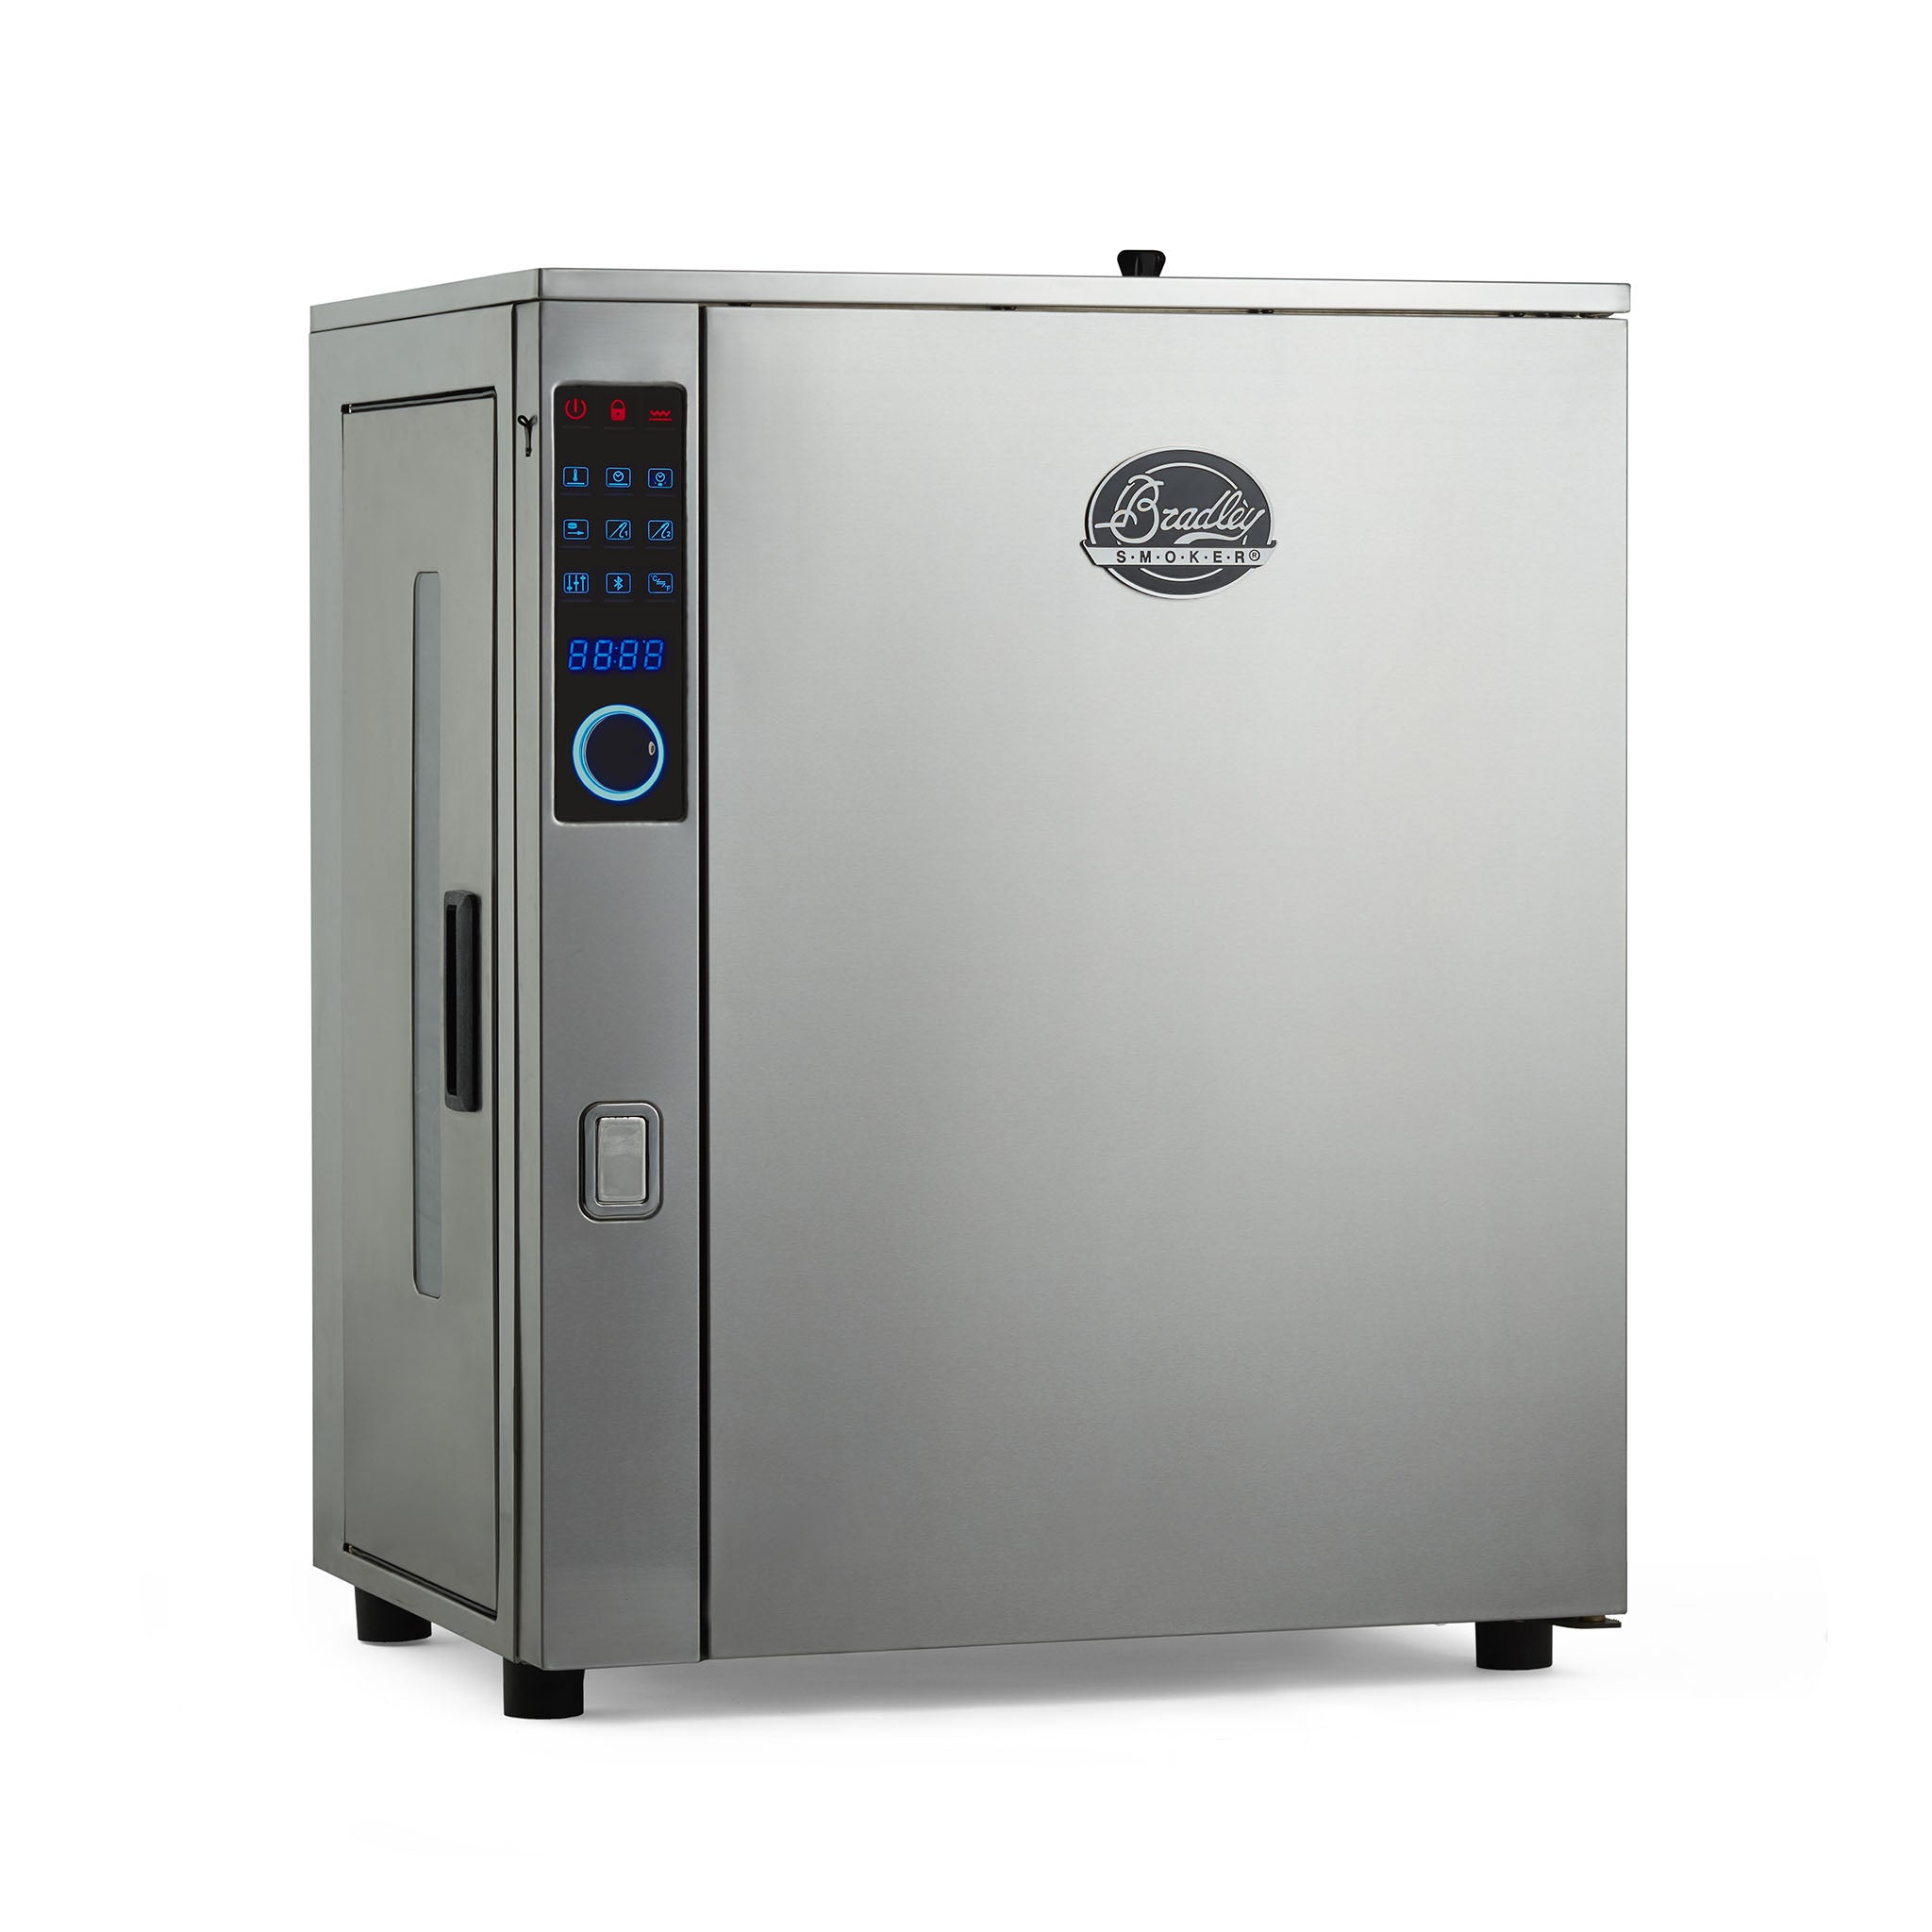 Bradley Professional Digital Automatic P10 5 Rack Smoker